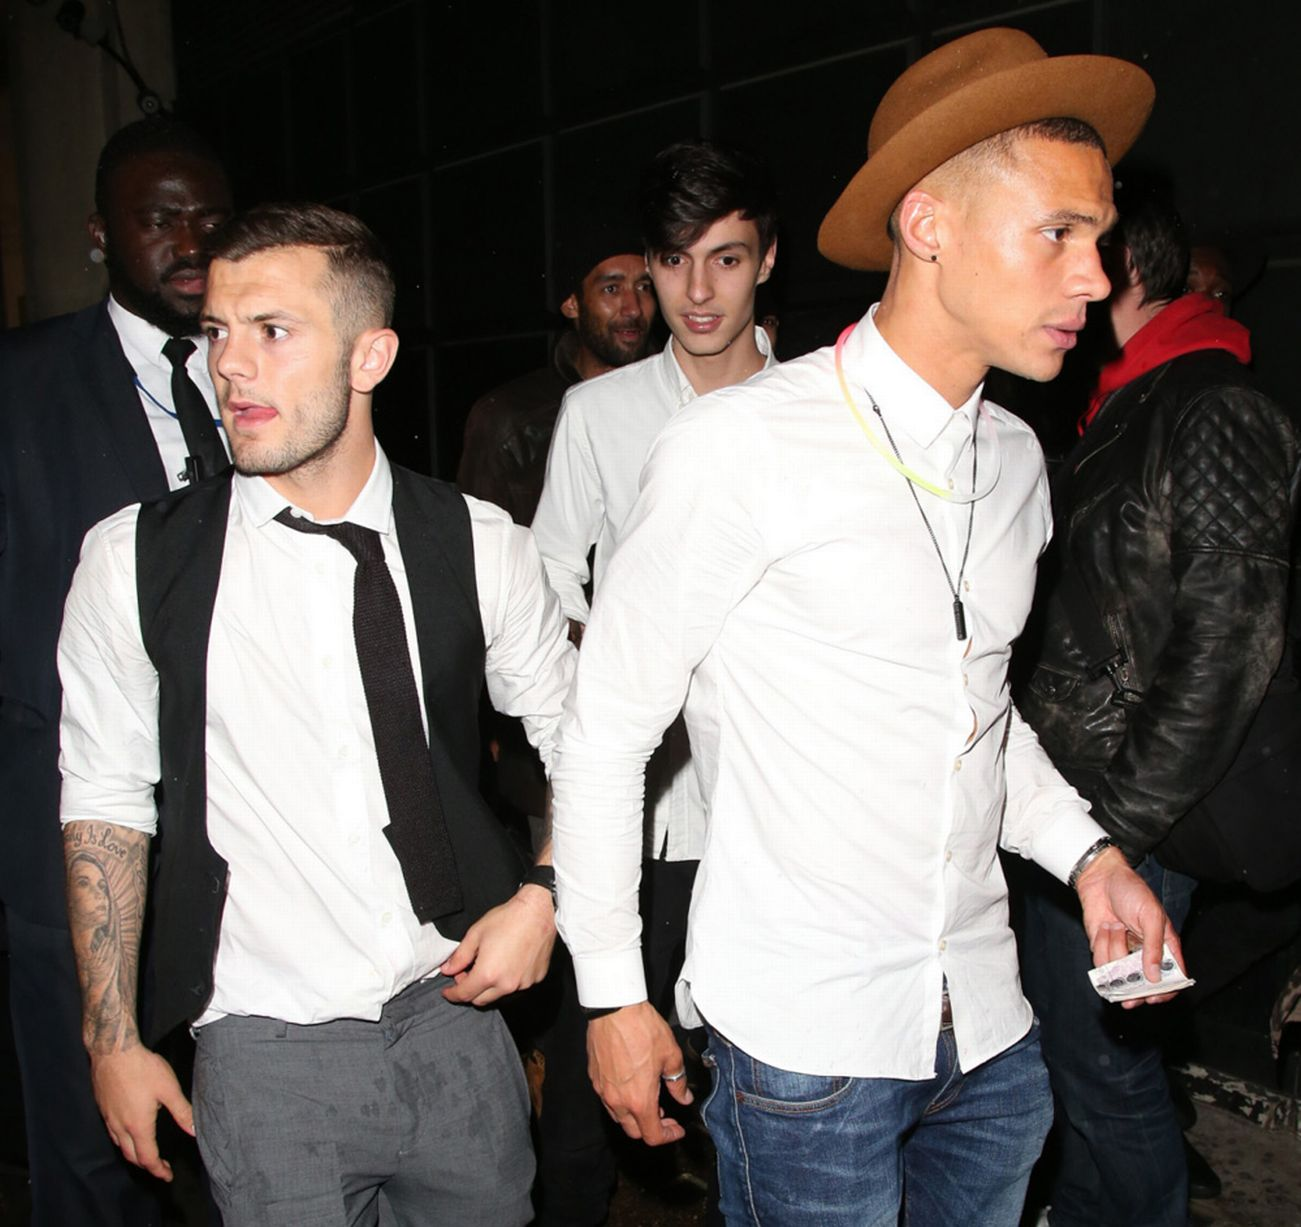 Wilshere and Gibbs in nightclub